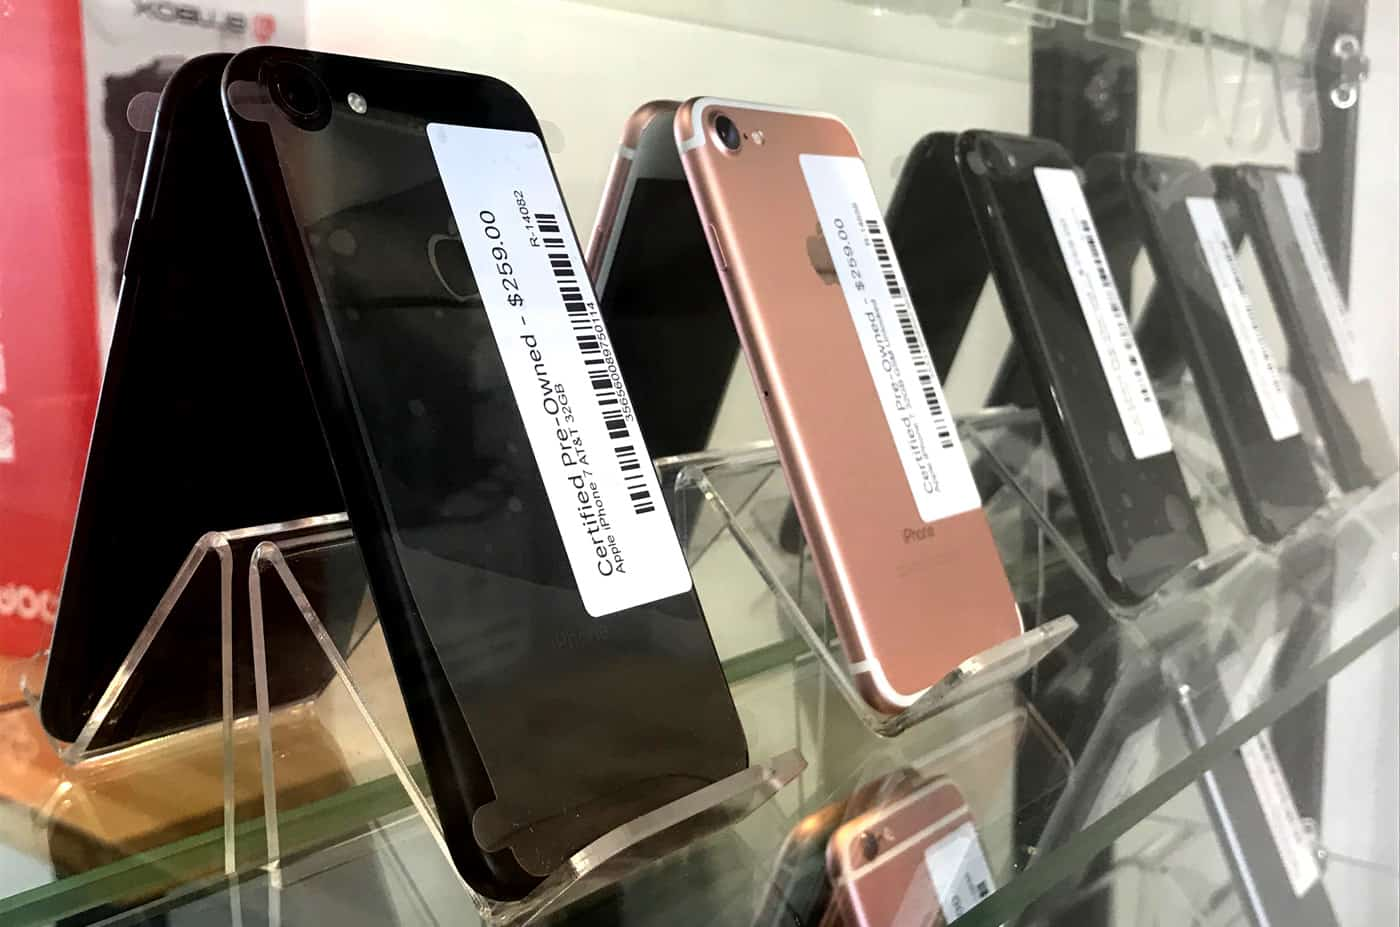 iphones for sale at itechshark in St. Louis County